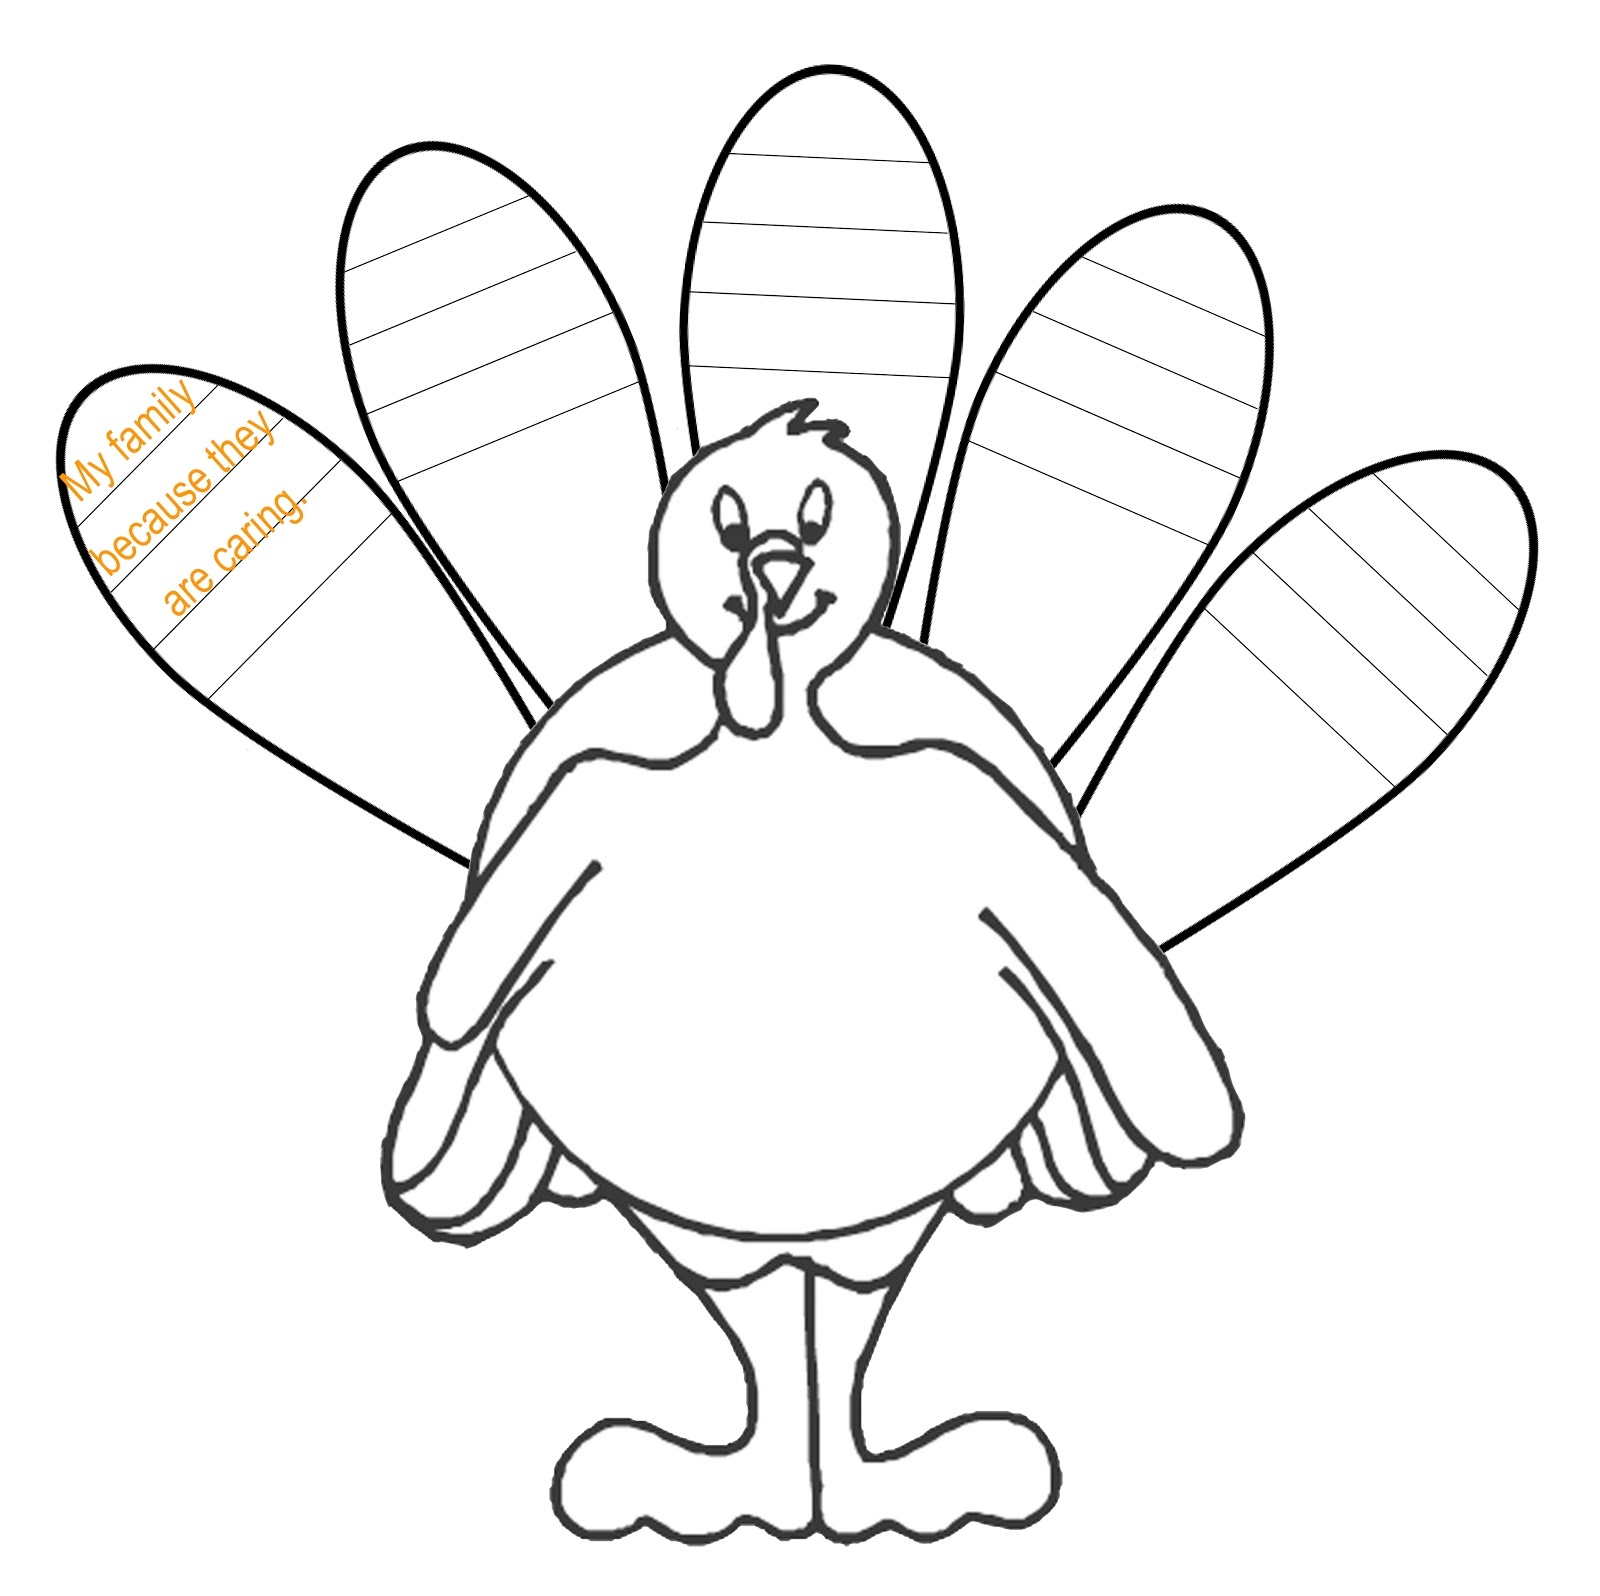 It's just a picture of Transformative Turkey Outline Printable